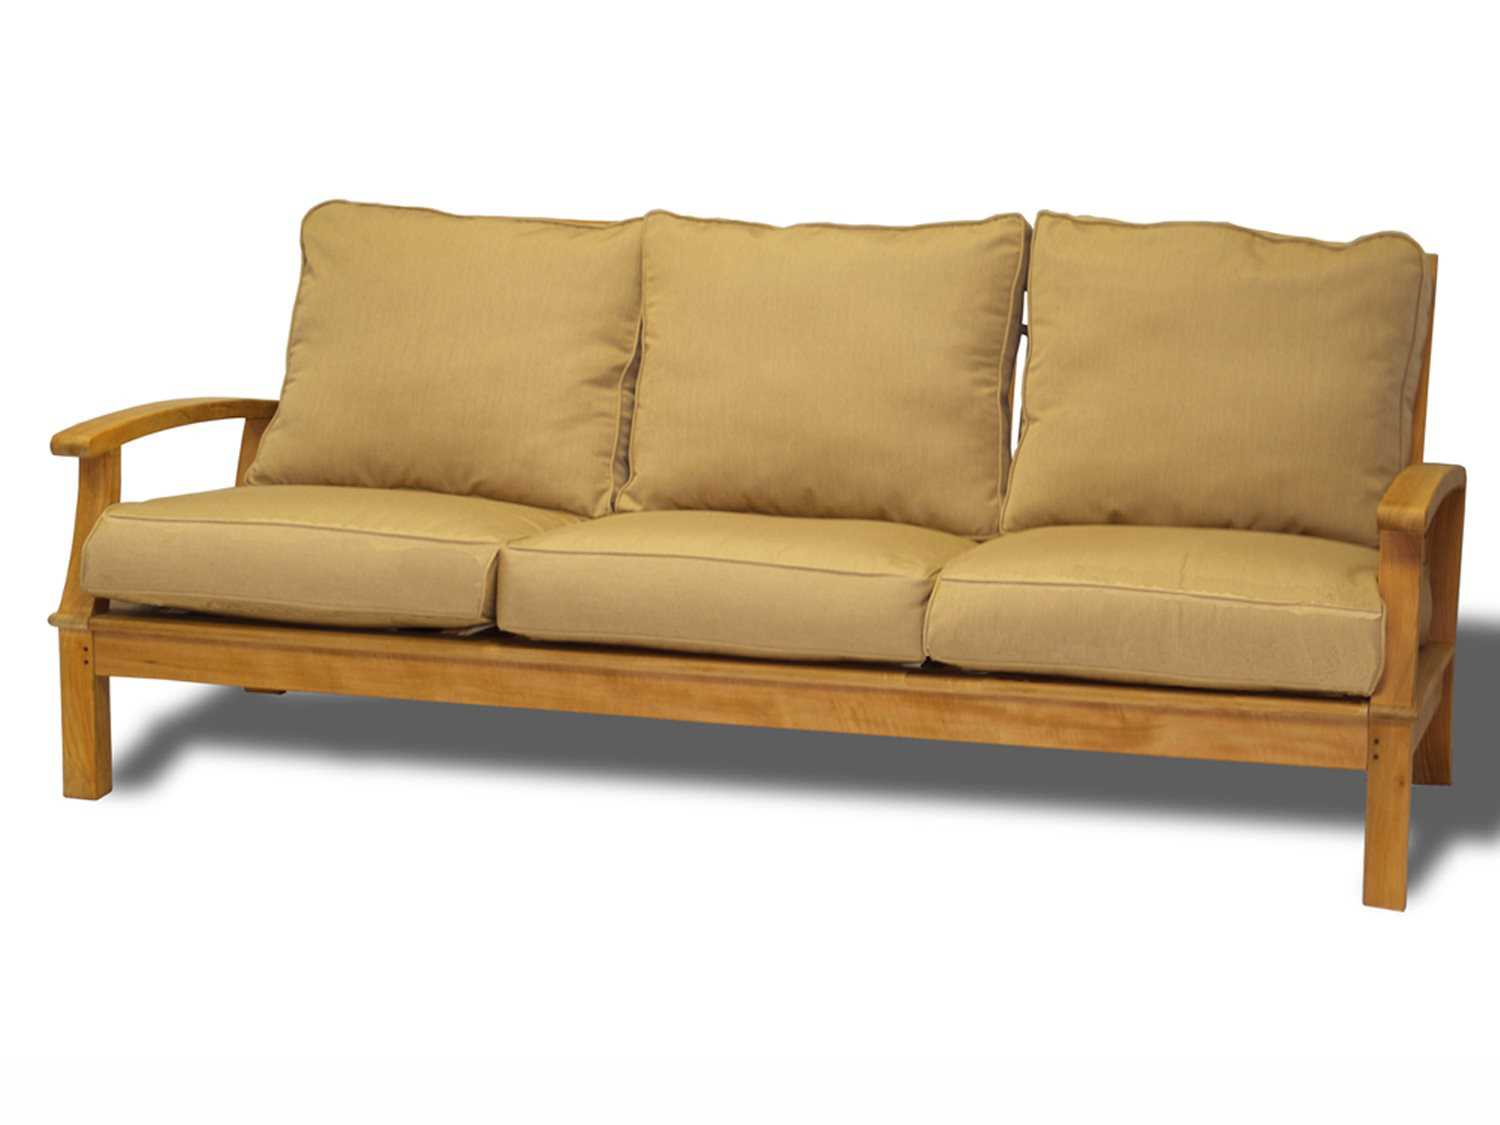 Three Birds Casual Monterey Teak Cushion Sofa Mt65